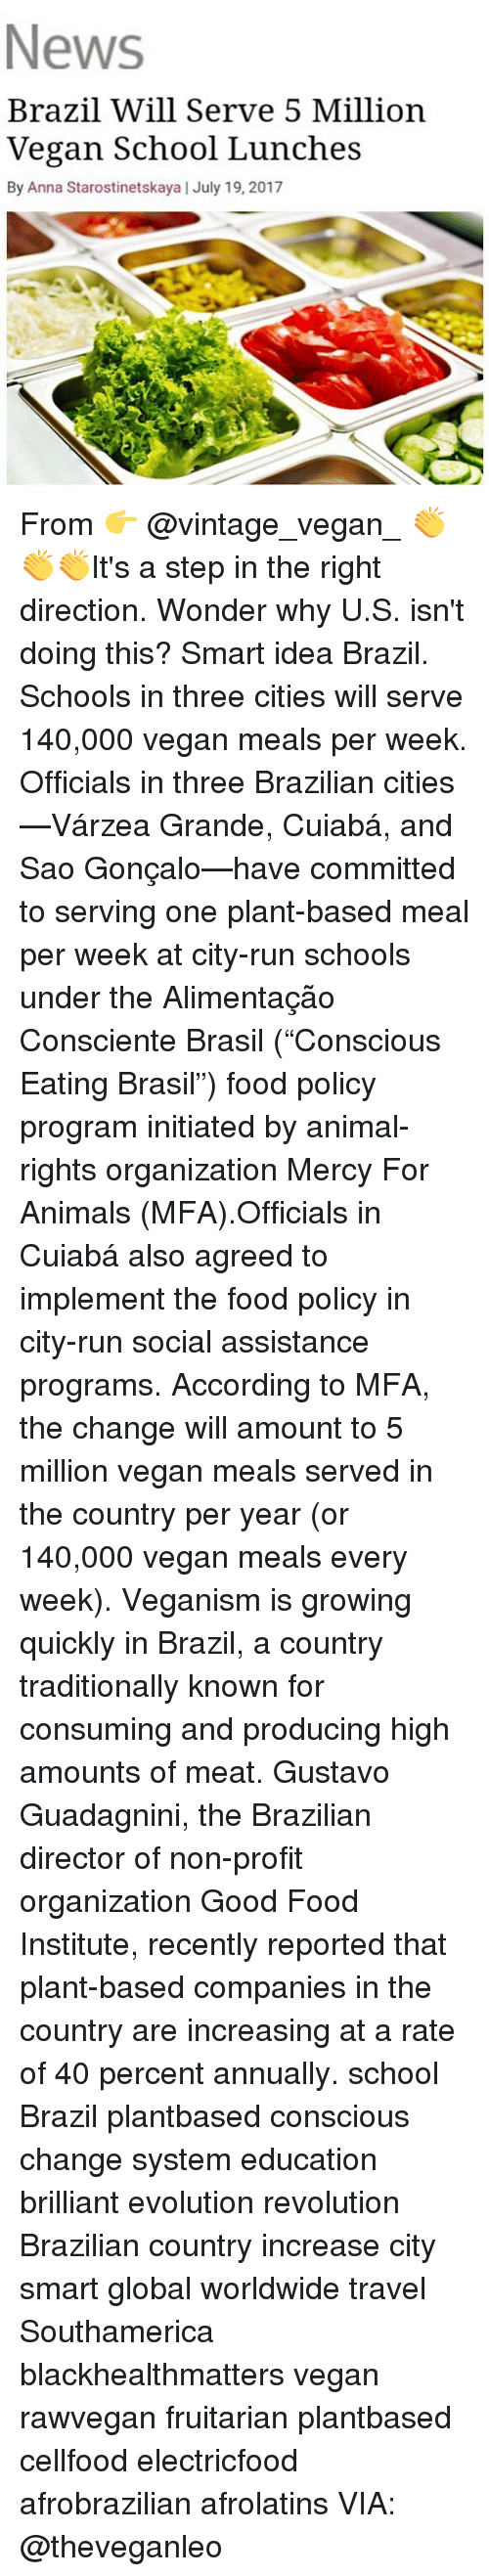 "Animals, Anna, and Food: News  Brazil Will Serve 5 Million  Vegan School Lunches  By Anna Starostinetskaya | July 19, 2017 From 👉 @vintage_vegan_ 👏👏👏It's a step in the right direction. Wonder why U.S. isn't doing this? Smart idea Brazil. Schools in three cities will serve 140,000 vegan meals per week. Officials in three Brazilian cities—Várzea Grande, Cuiabá, and Sao Gonçalo—have committed to serving one plant-based meal per week at city-run schools under the Alimentação Consciente Brasil (""Conscious Eating Brasil"") food policy program initiated by animal-rights organization Mercy For Animals (MFA).Officials in Cuiabá also agreed to implement the food policy in city-run social assistance programs. According to MFA, the change will amount to 5 million vegan meals served in the country per year (or 140,000 vegan meals every week). Veganism is growing quickly in Brazil, a country traditionally known for consuming and producing high amounts of meat. Gustavo Guadagnini, the Brazilian director of non-profit organization Good Food Institute, recently reported that plant-based companies in the country are increasing at a rate of 40 percent annually. school Brazil plantbased conscious change system education brilliant evolution revolution Brazilian country increase city smart global worldwide travel Southamerica blackhealthmatters vegan rawvegan fruitarian plantbased cellfood electricfood afrobrazilian afrolatins VIA: @theveganleo"